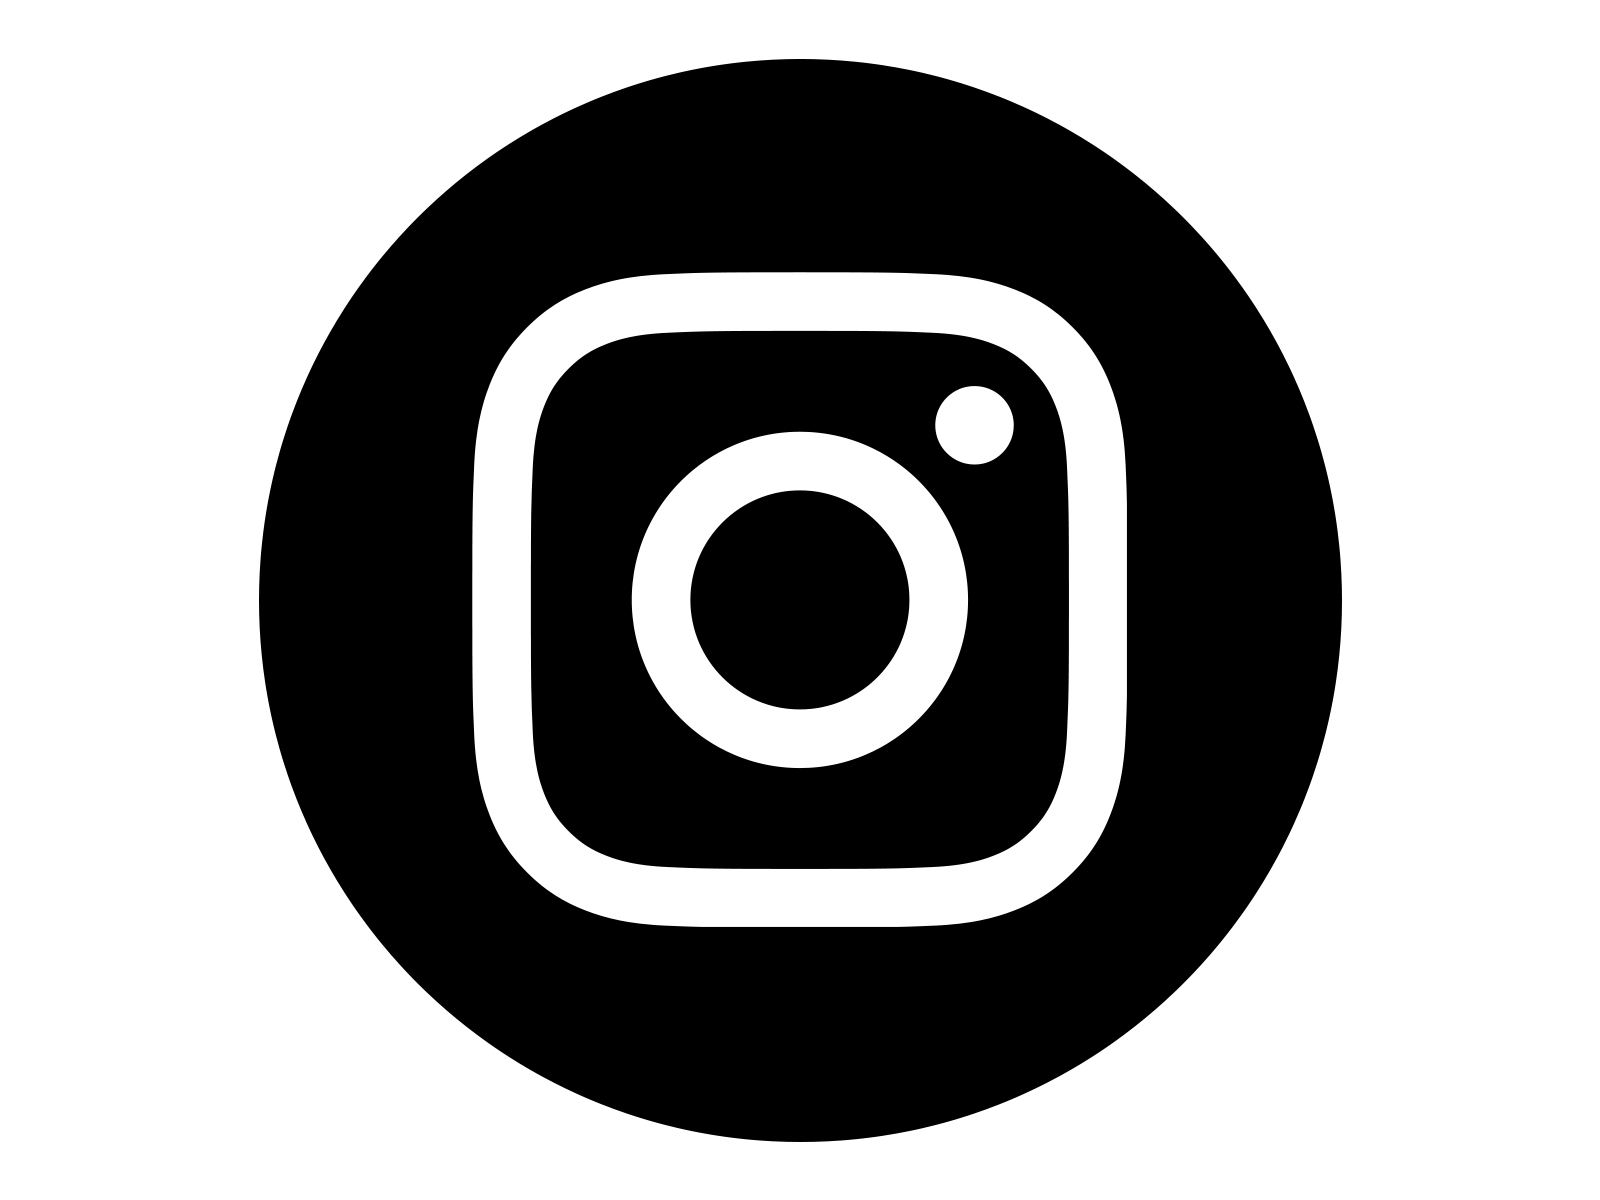 Simbolo do instagram clipart vector black and white stock Instagram Icon White on Black Circle | png en 2019 | Logo de ... vector black and white stock